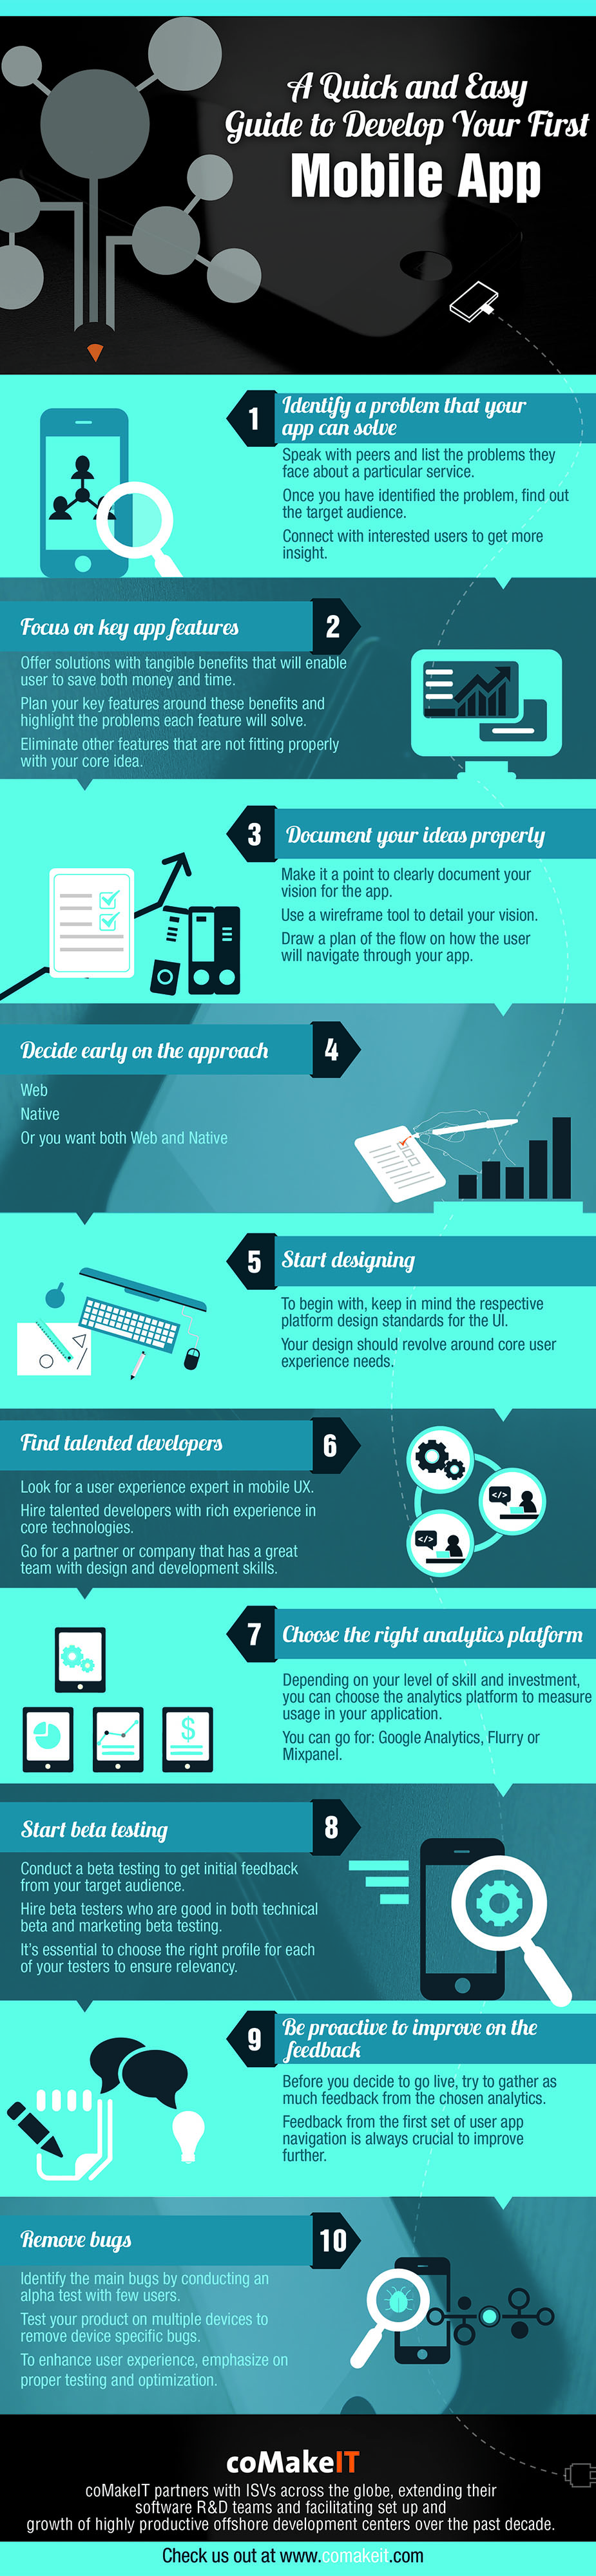 Mobile_app_development_Infographic